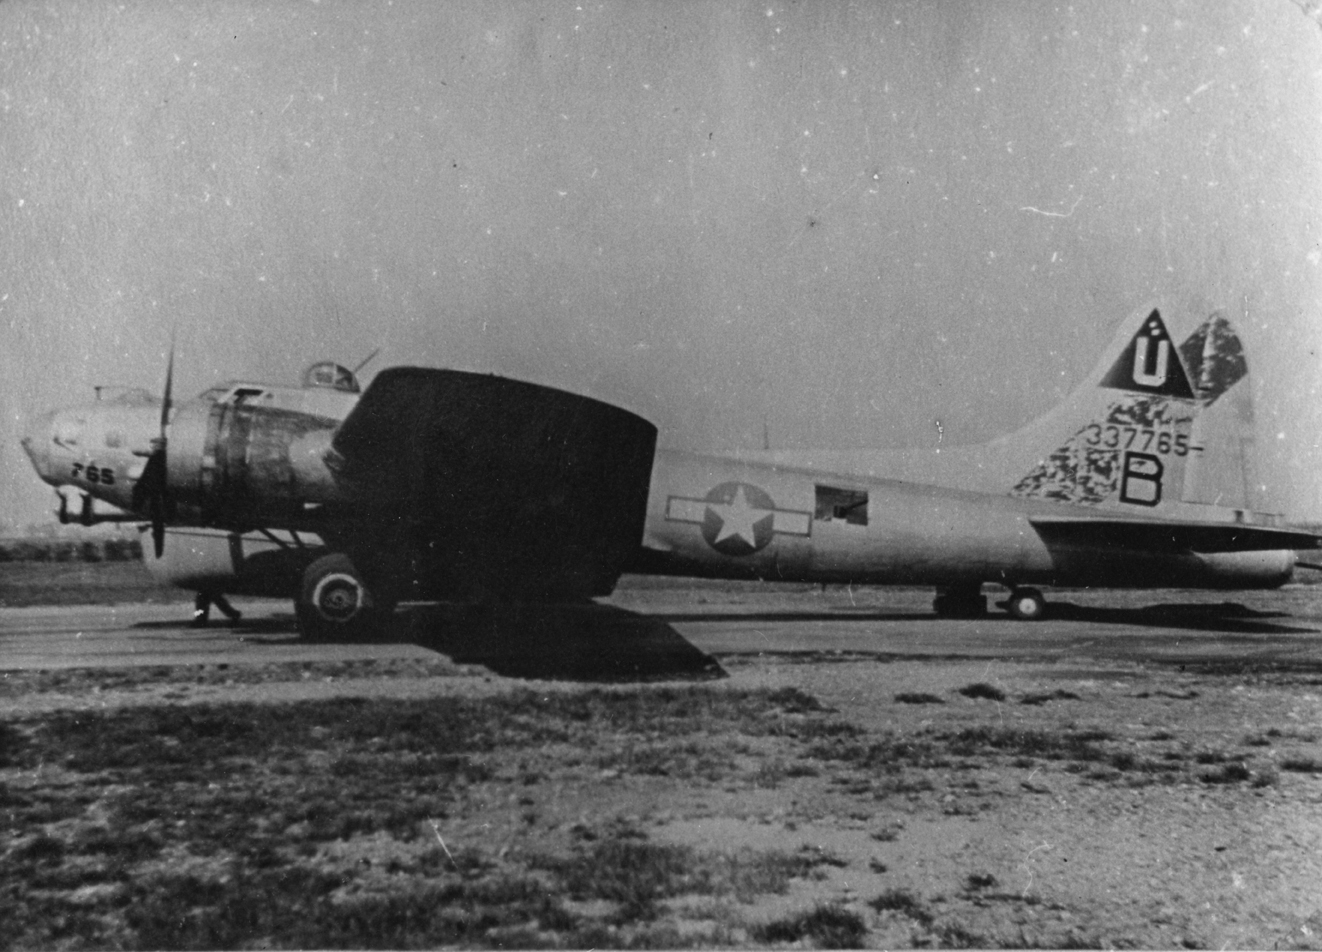 B-17 #43-37765 / The Duchess aka Donna J. II